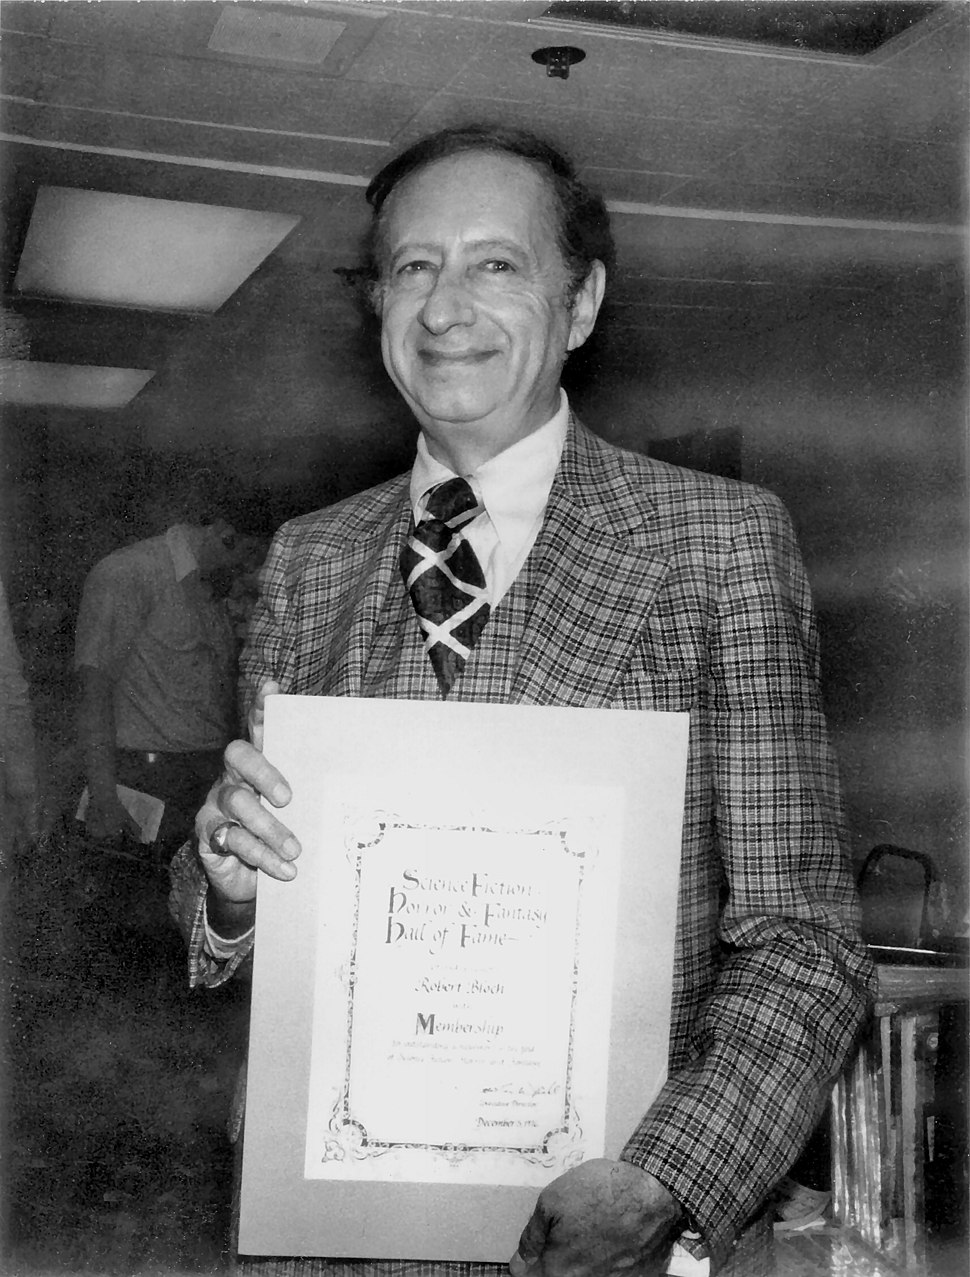 Robert Bloch with His Award